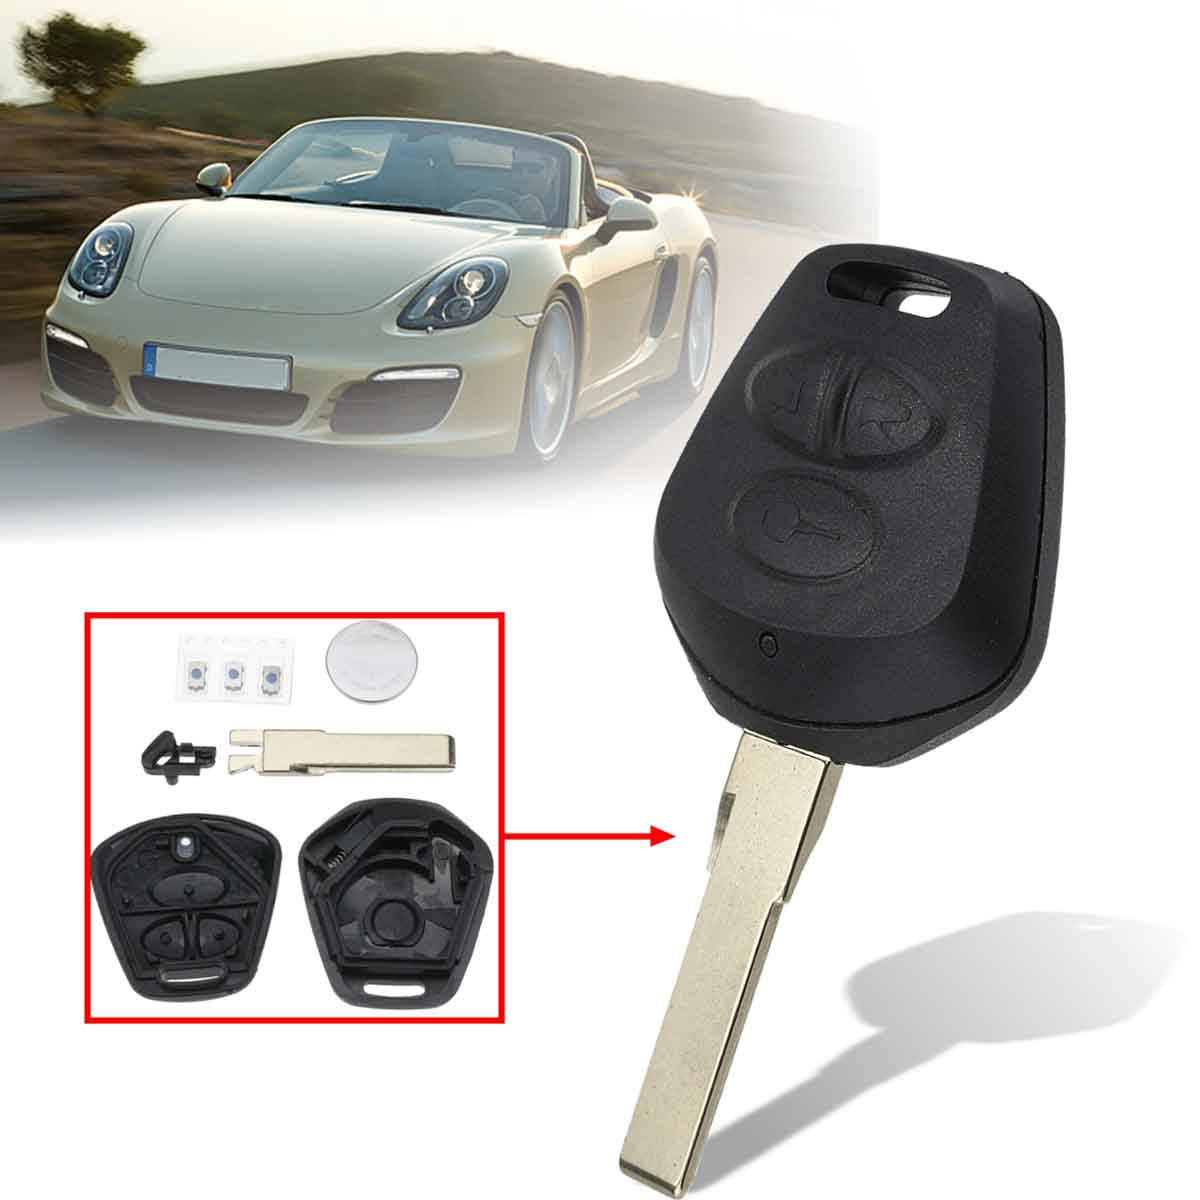 3 Buttons Remote Key Fob Case With Key Blank For Porsche Boxster S 911 996 Cayen